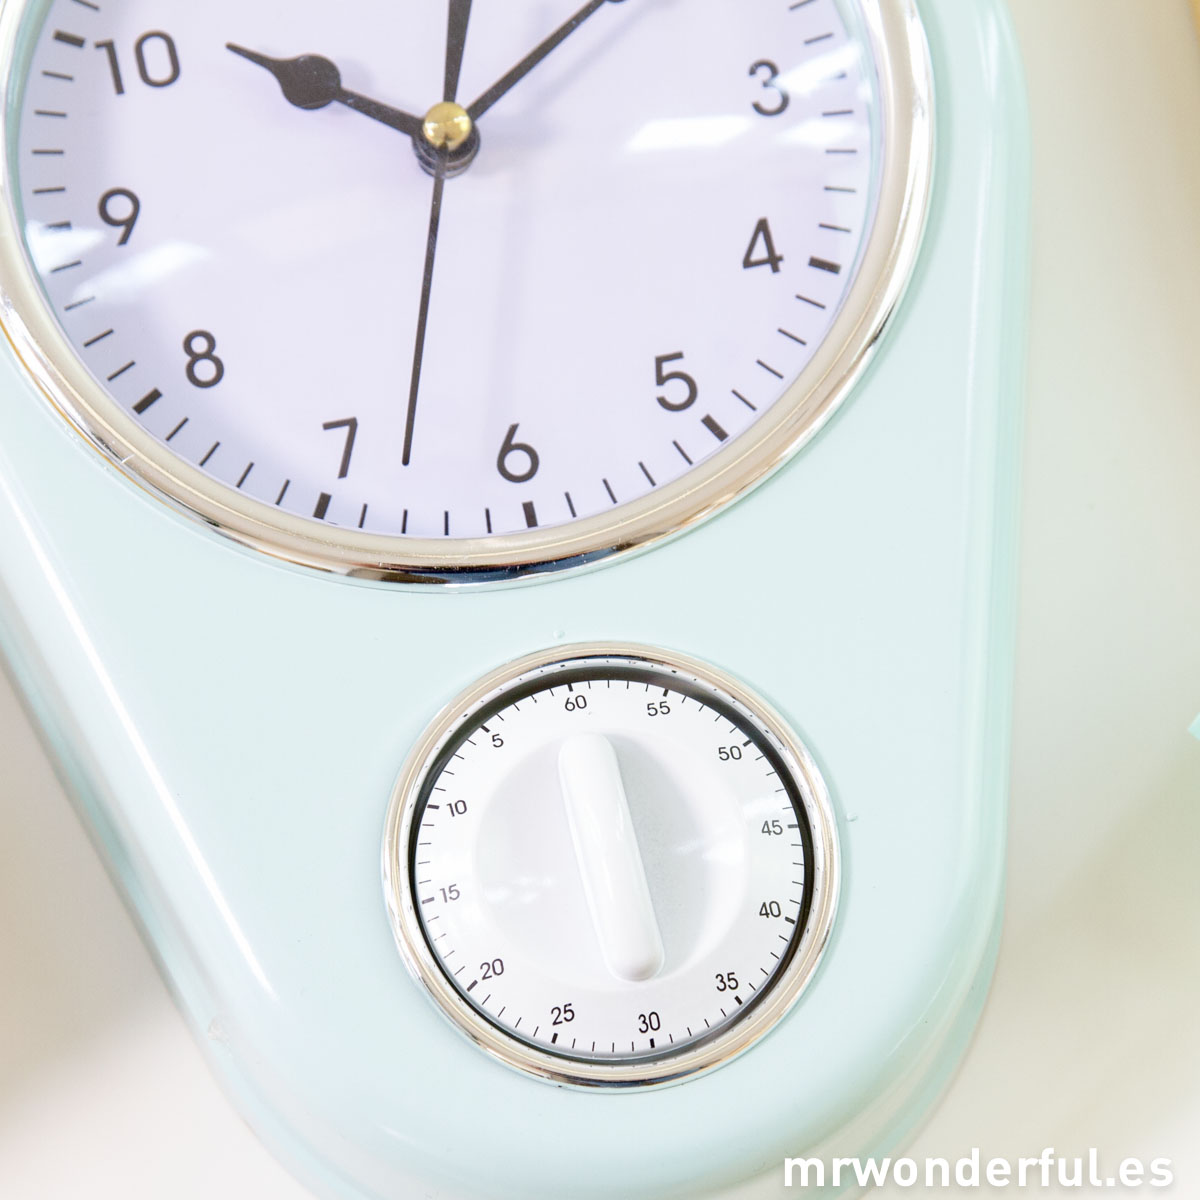 Mr.Wonderful reloj de cocina azul con temporizador